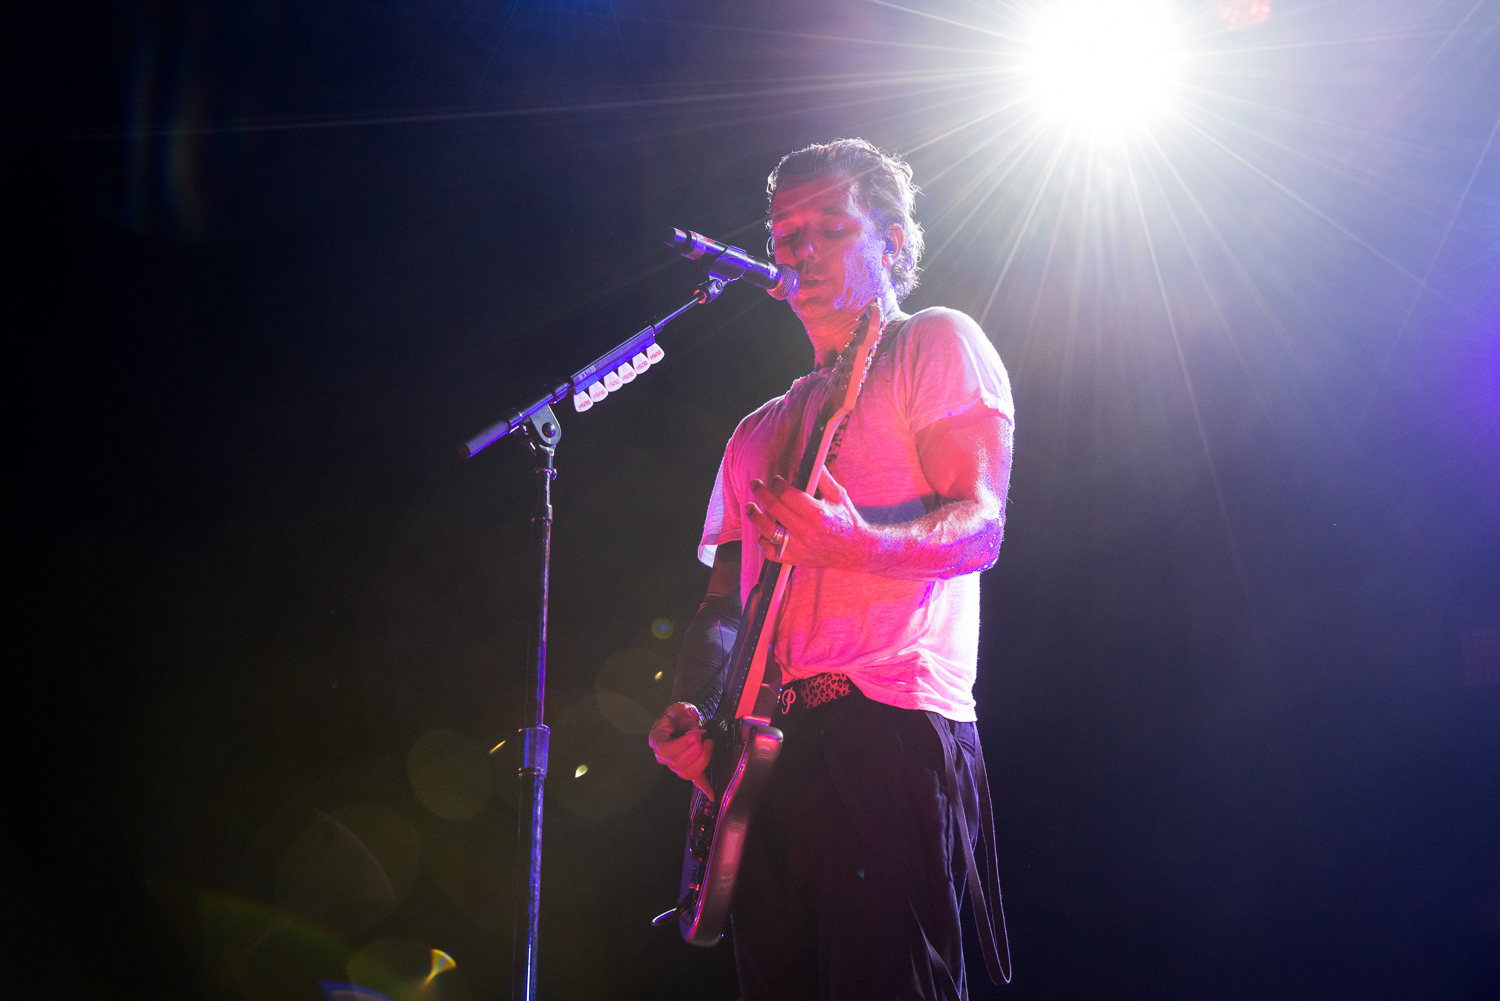 Bush frontman Gavin Rossdale performing at Summer Music Festival  Musikfest, August 2016 in Bethlehem, Pennsylvania.  Sands Steel Stage.